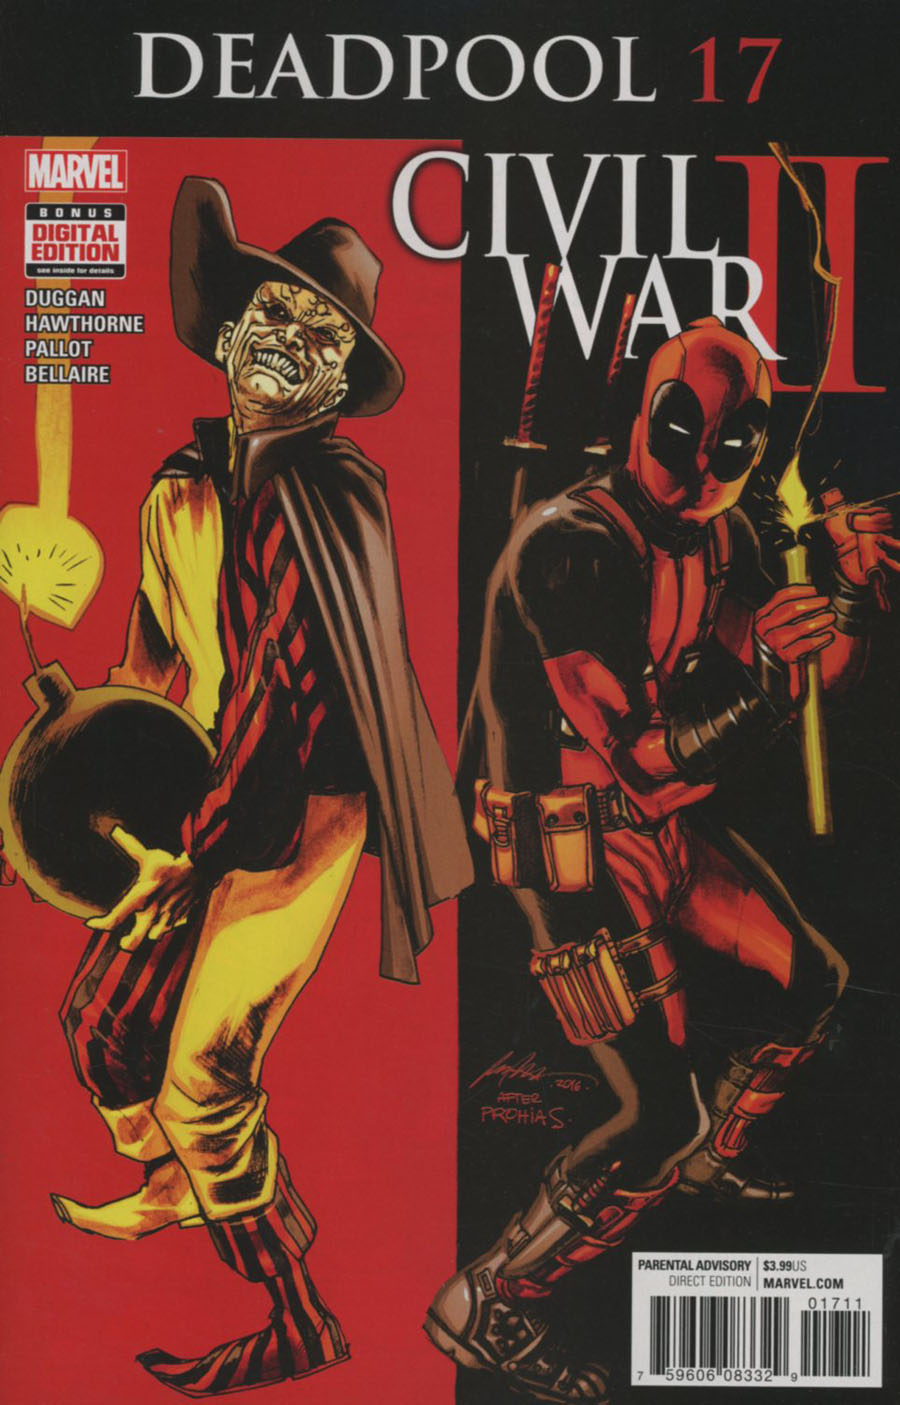 Deadpool Vol 5 #17 Cover A Regular Rafael Albuquerque Cover (Civil War II Tie-In)